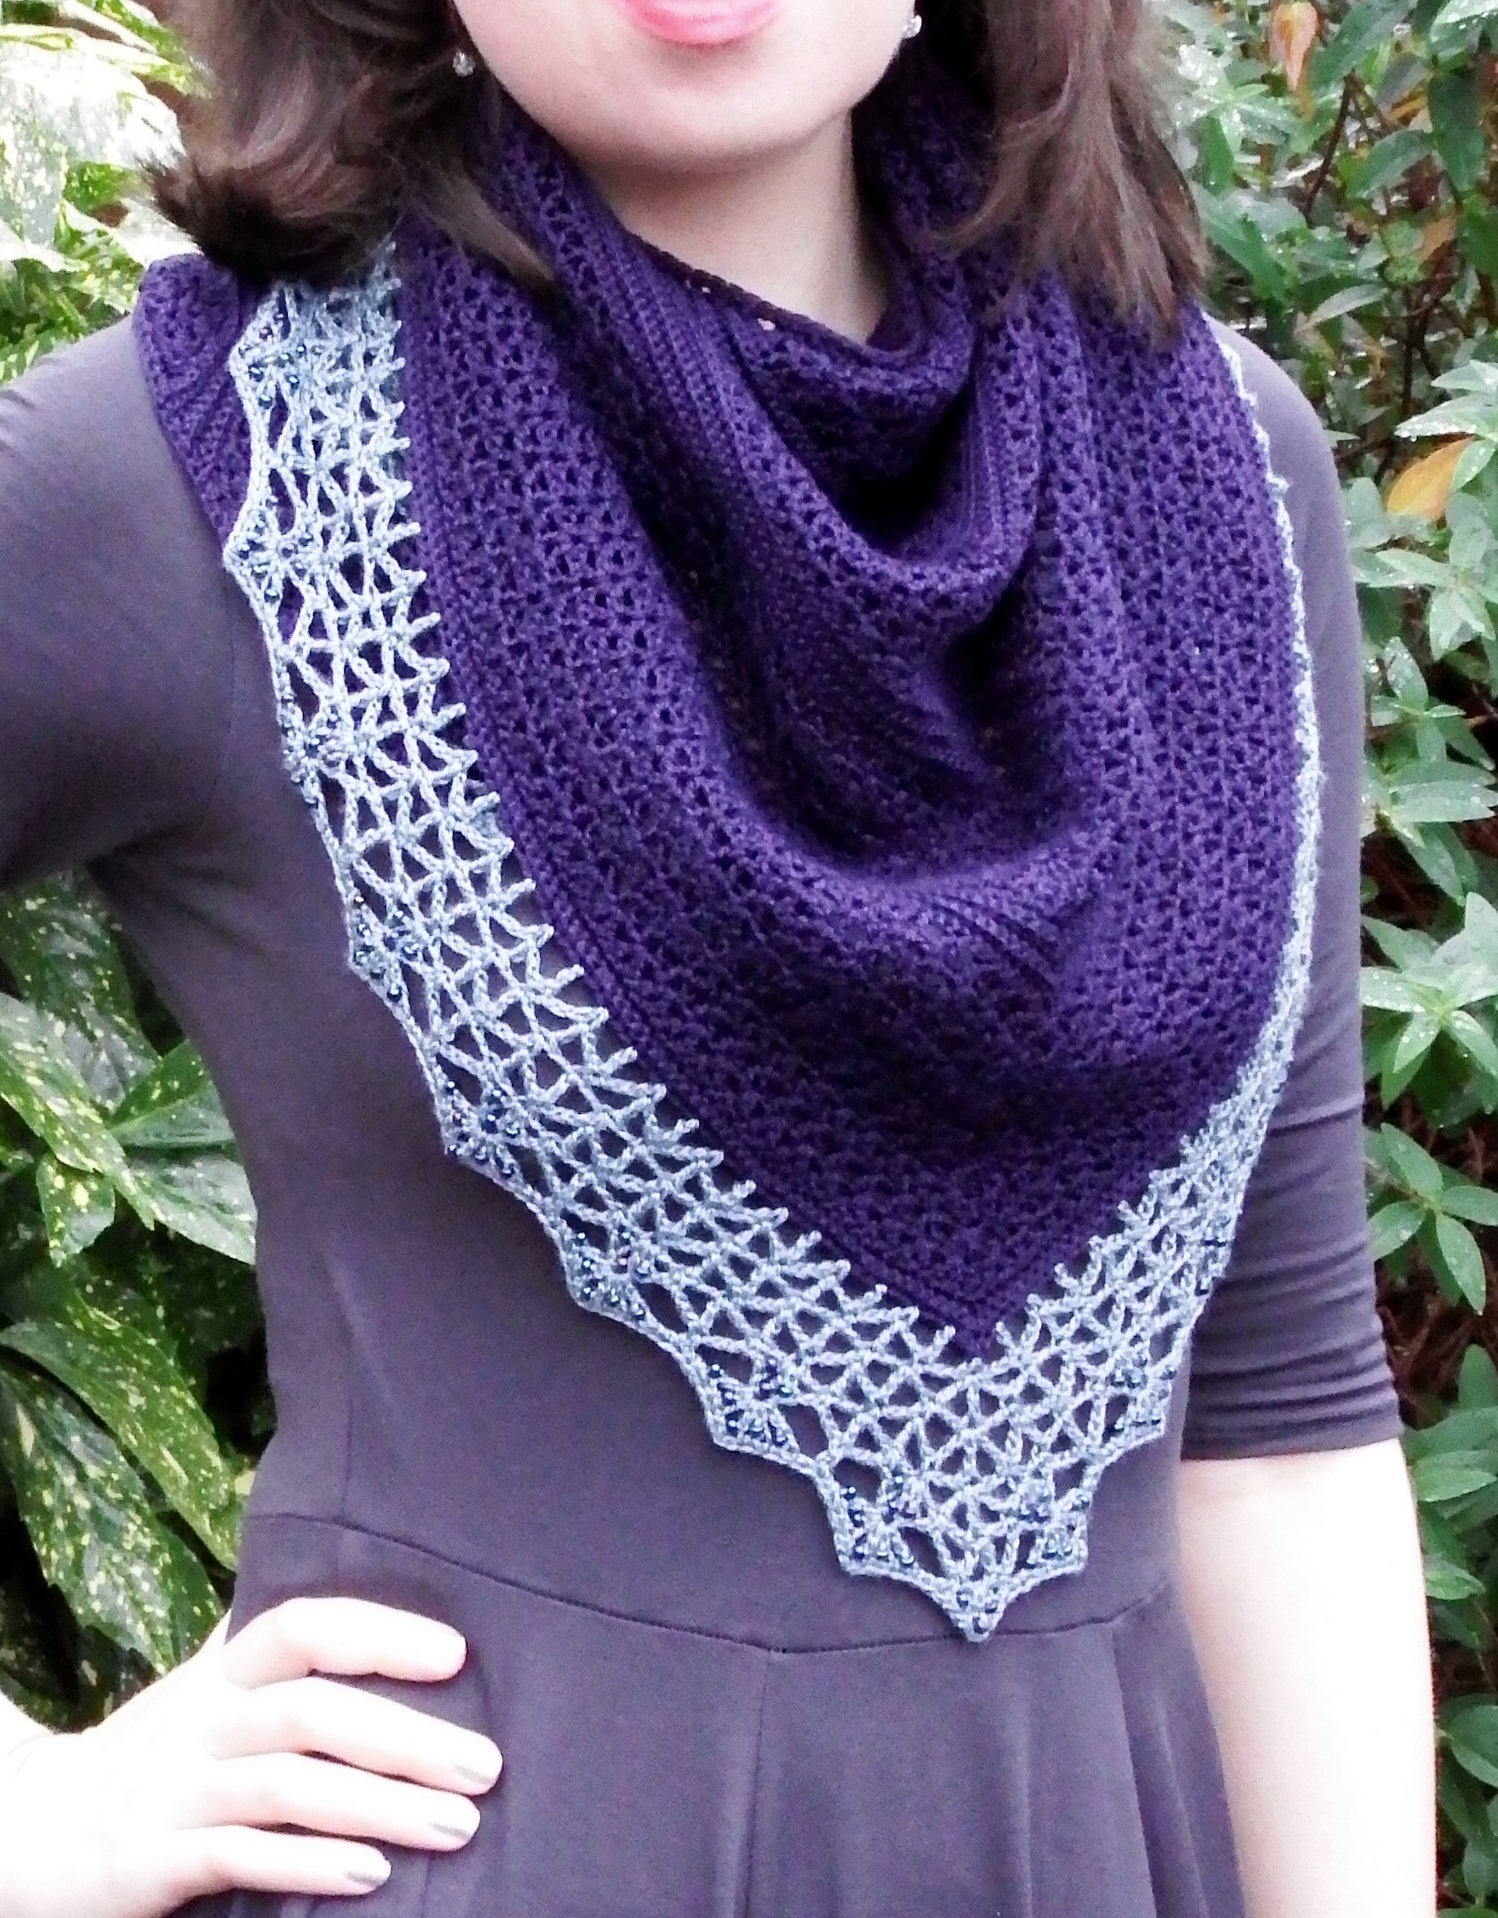 Free Crochet Edging Patterns For Shawls : Atlantic Lace Shawl Make My Day Creative